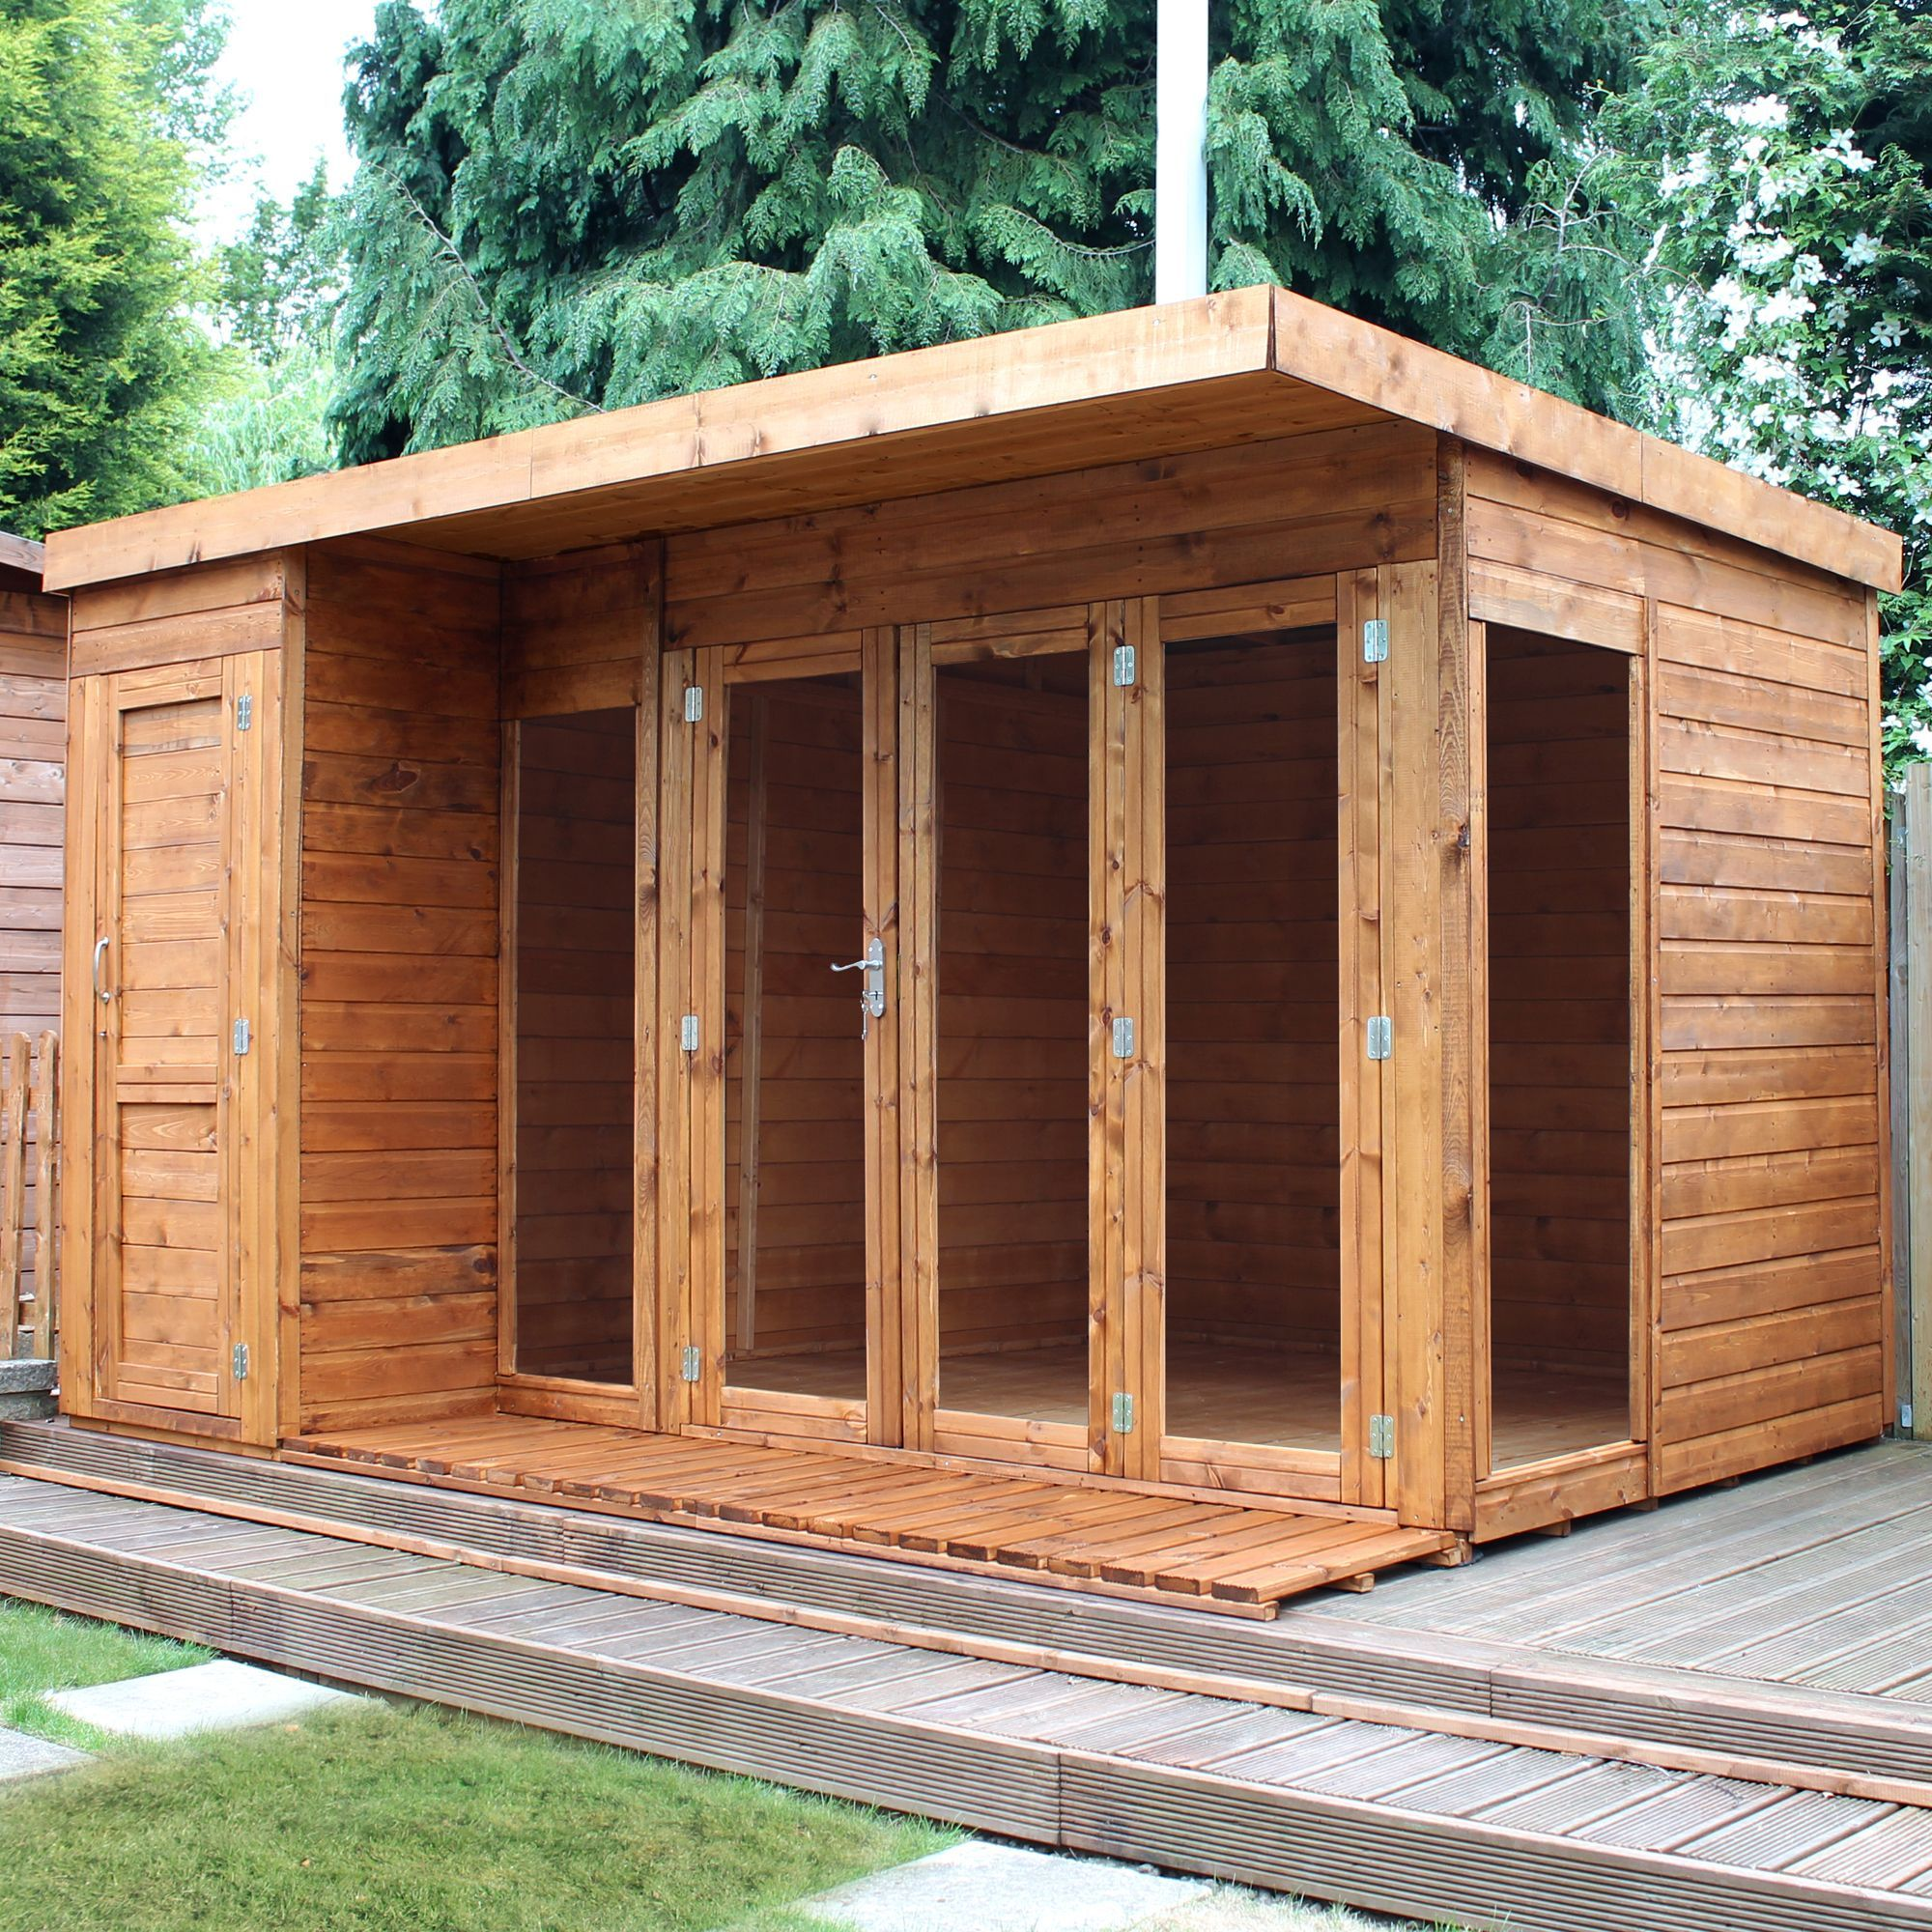 12X8 Combi Garden Room Shiplap Timber Summerhouse & Store